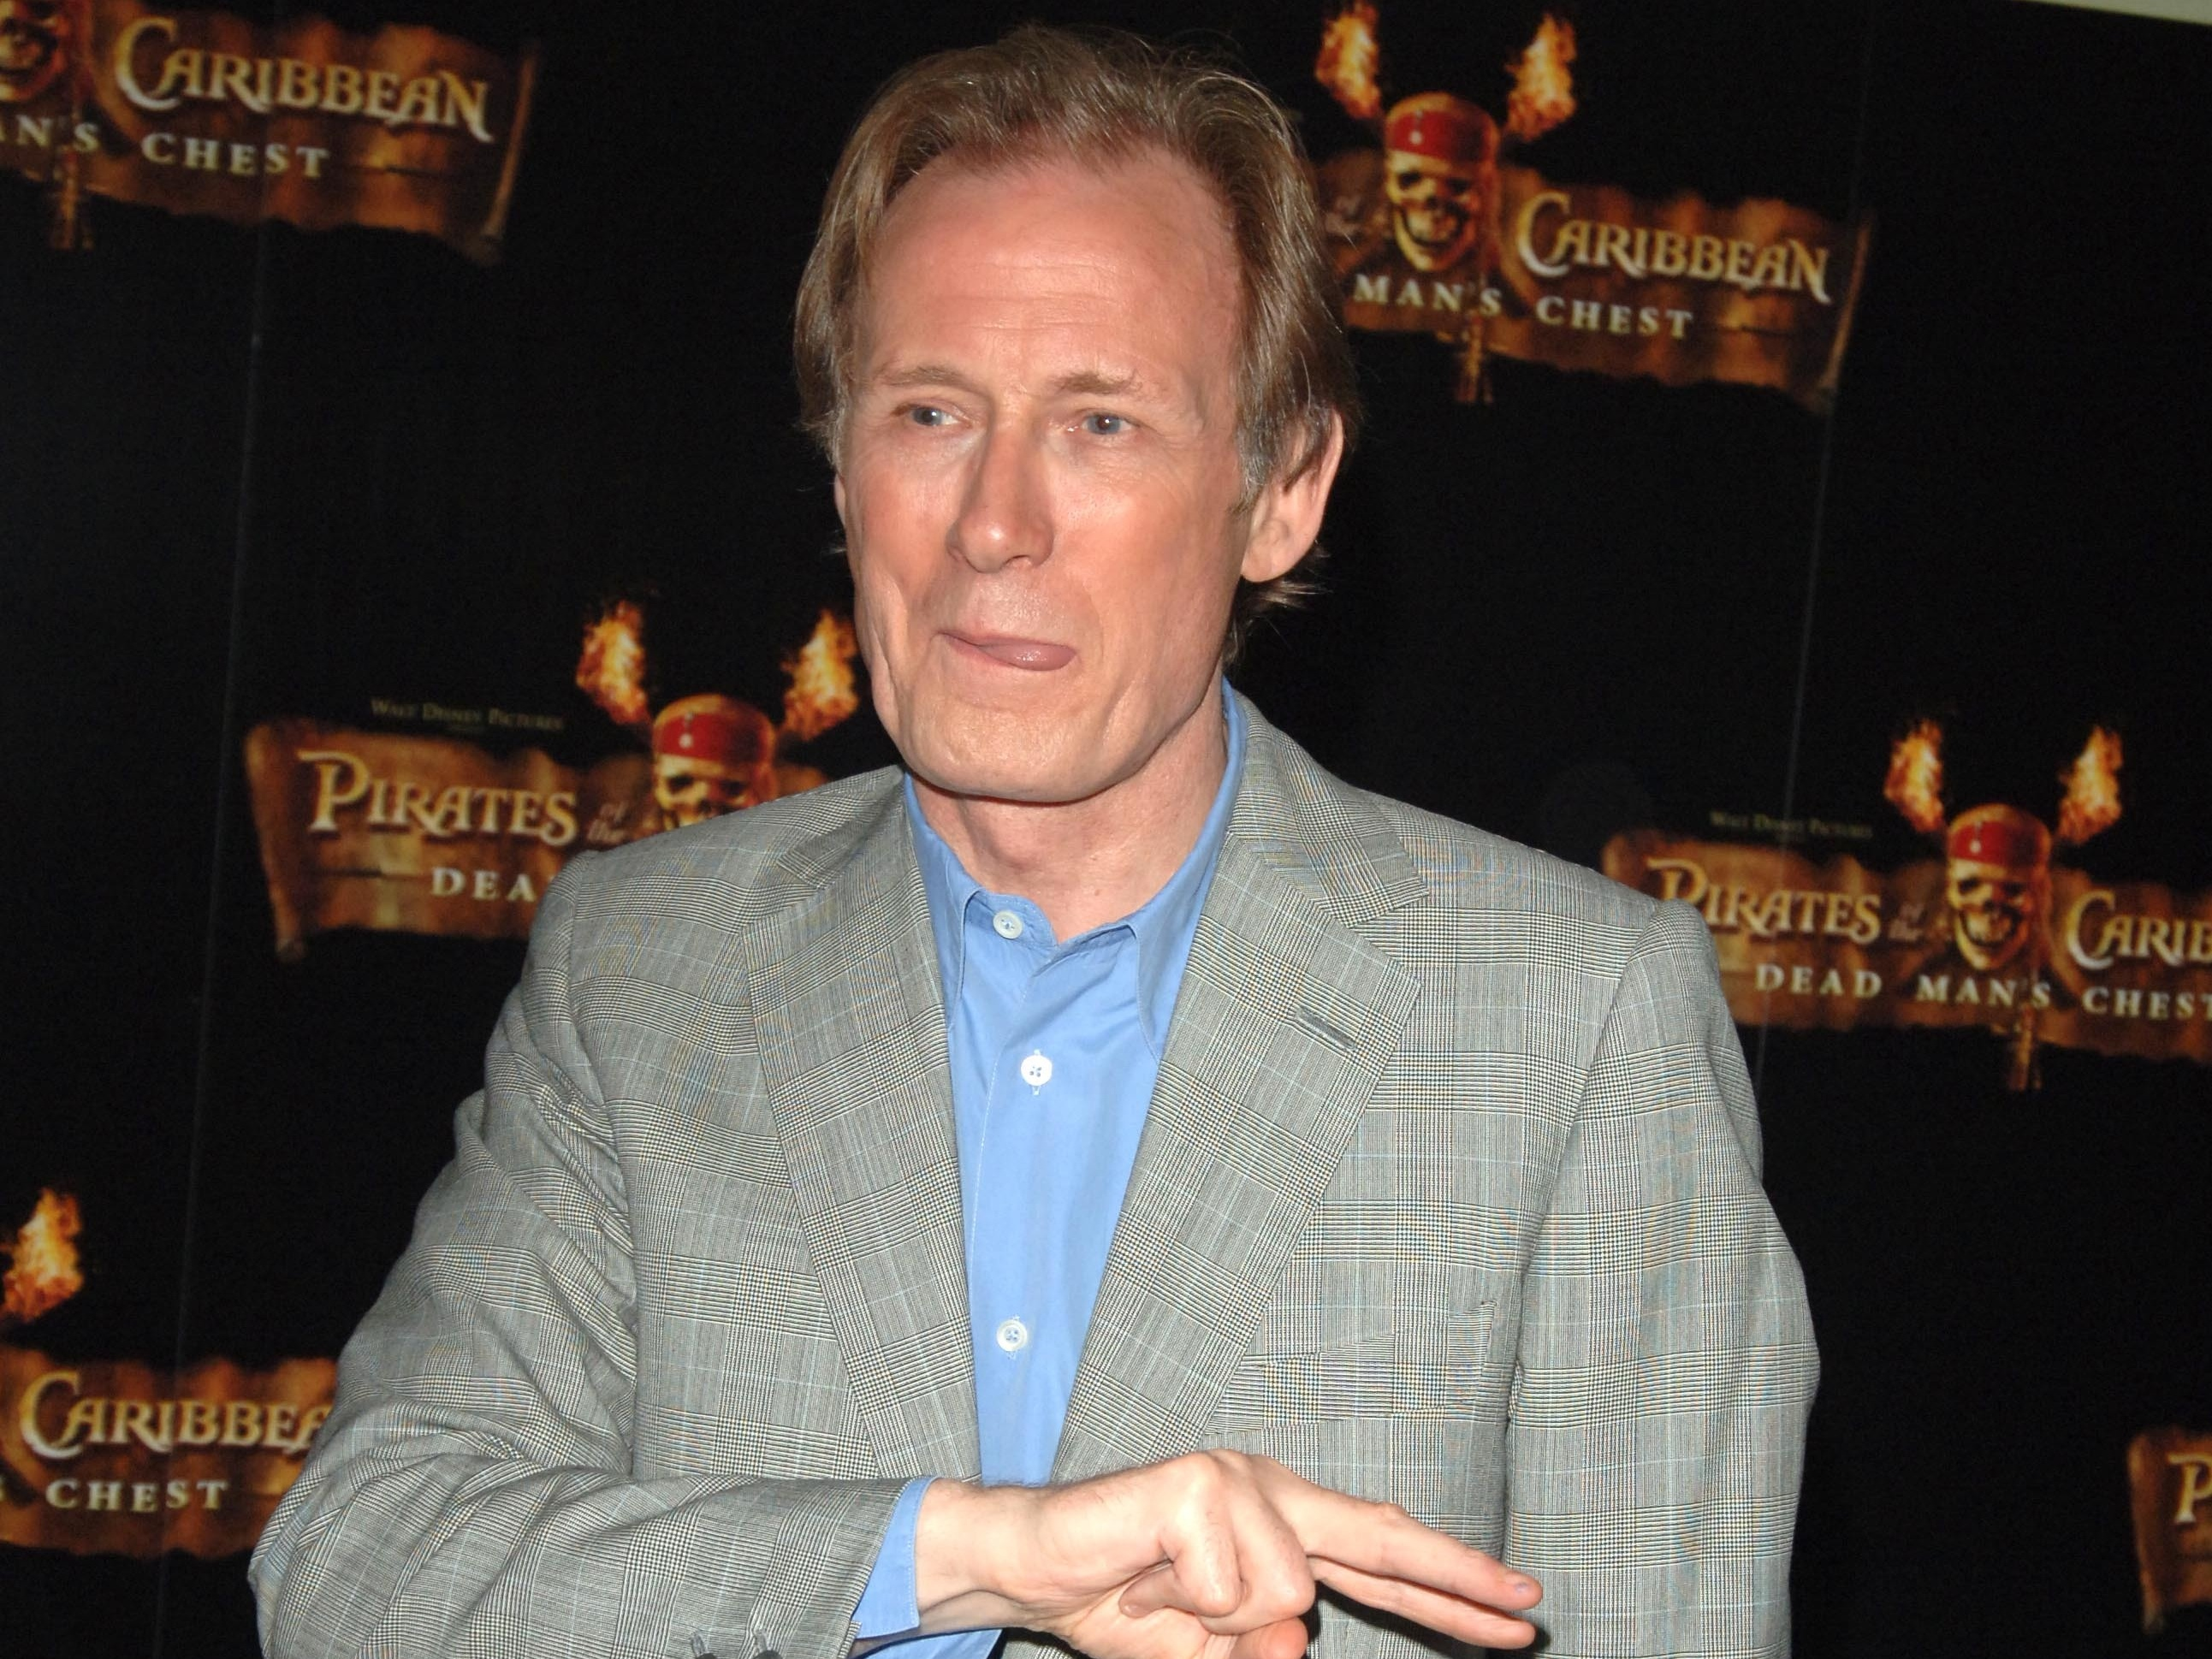 Nighy attends the launch of Pirates Of The Caribbean: Dead Man's Chest in 2006.